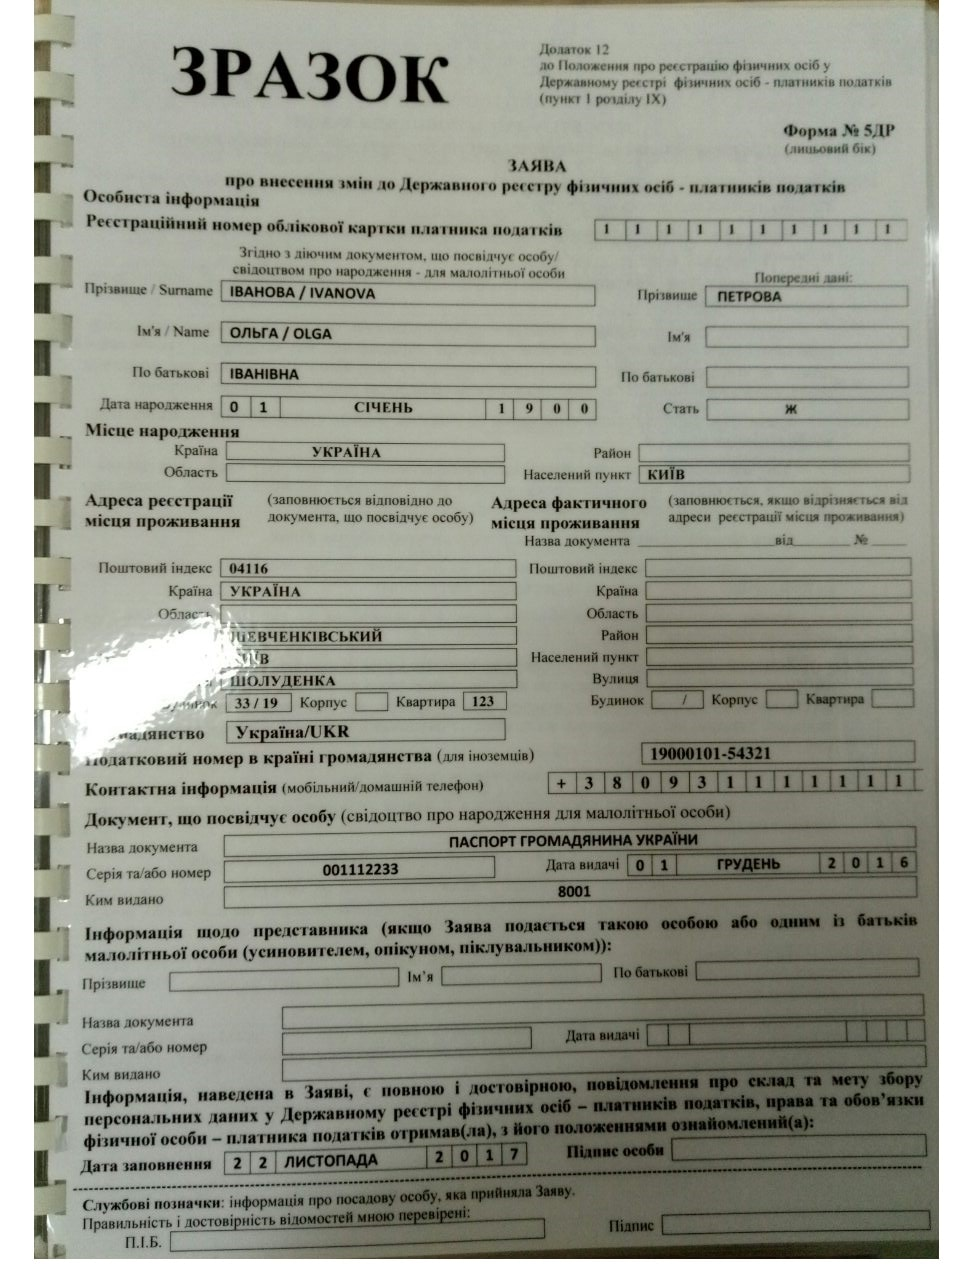 Example of filling out an application for amending the identification code